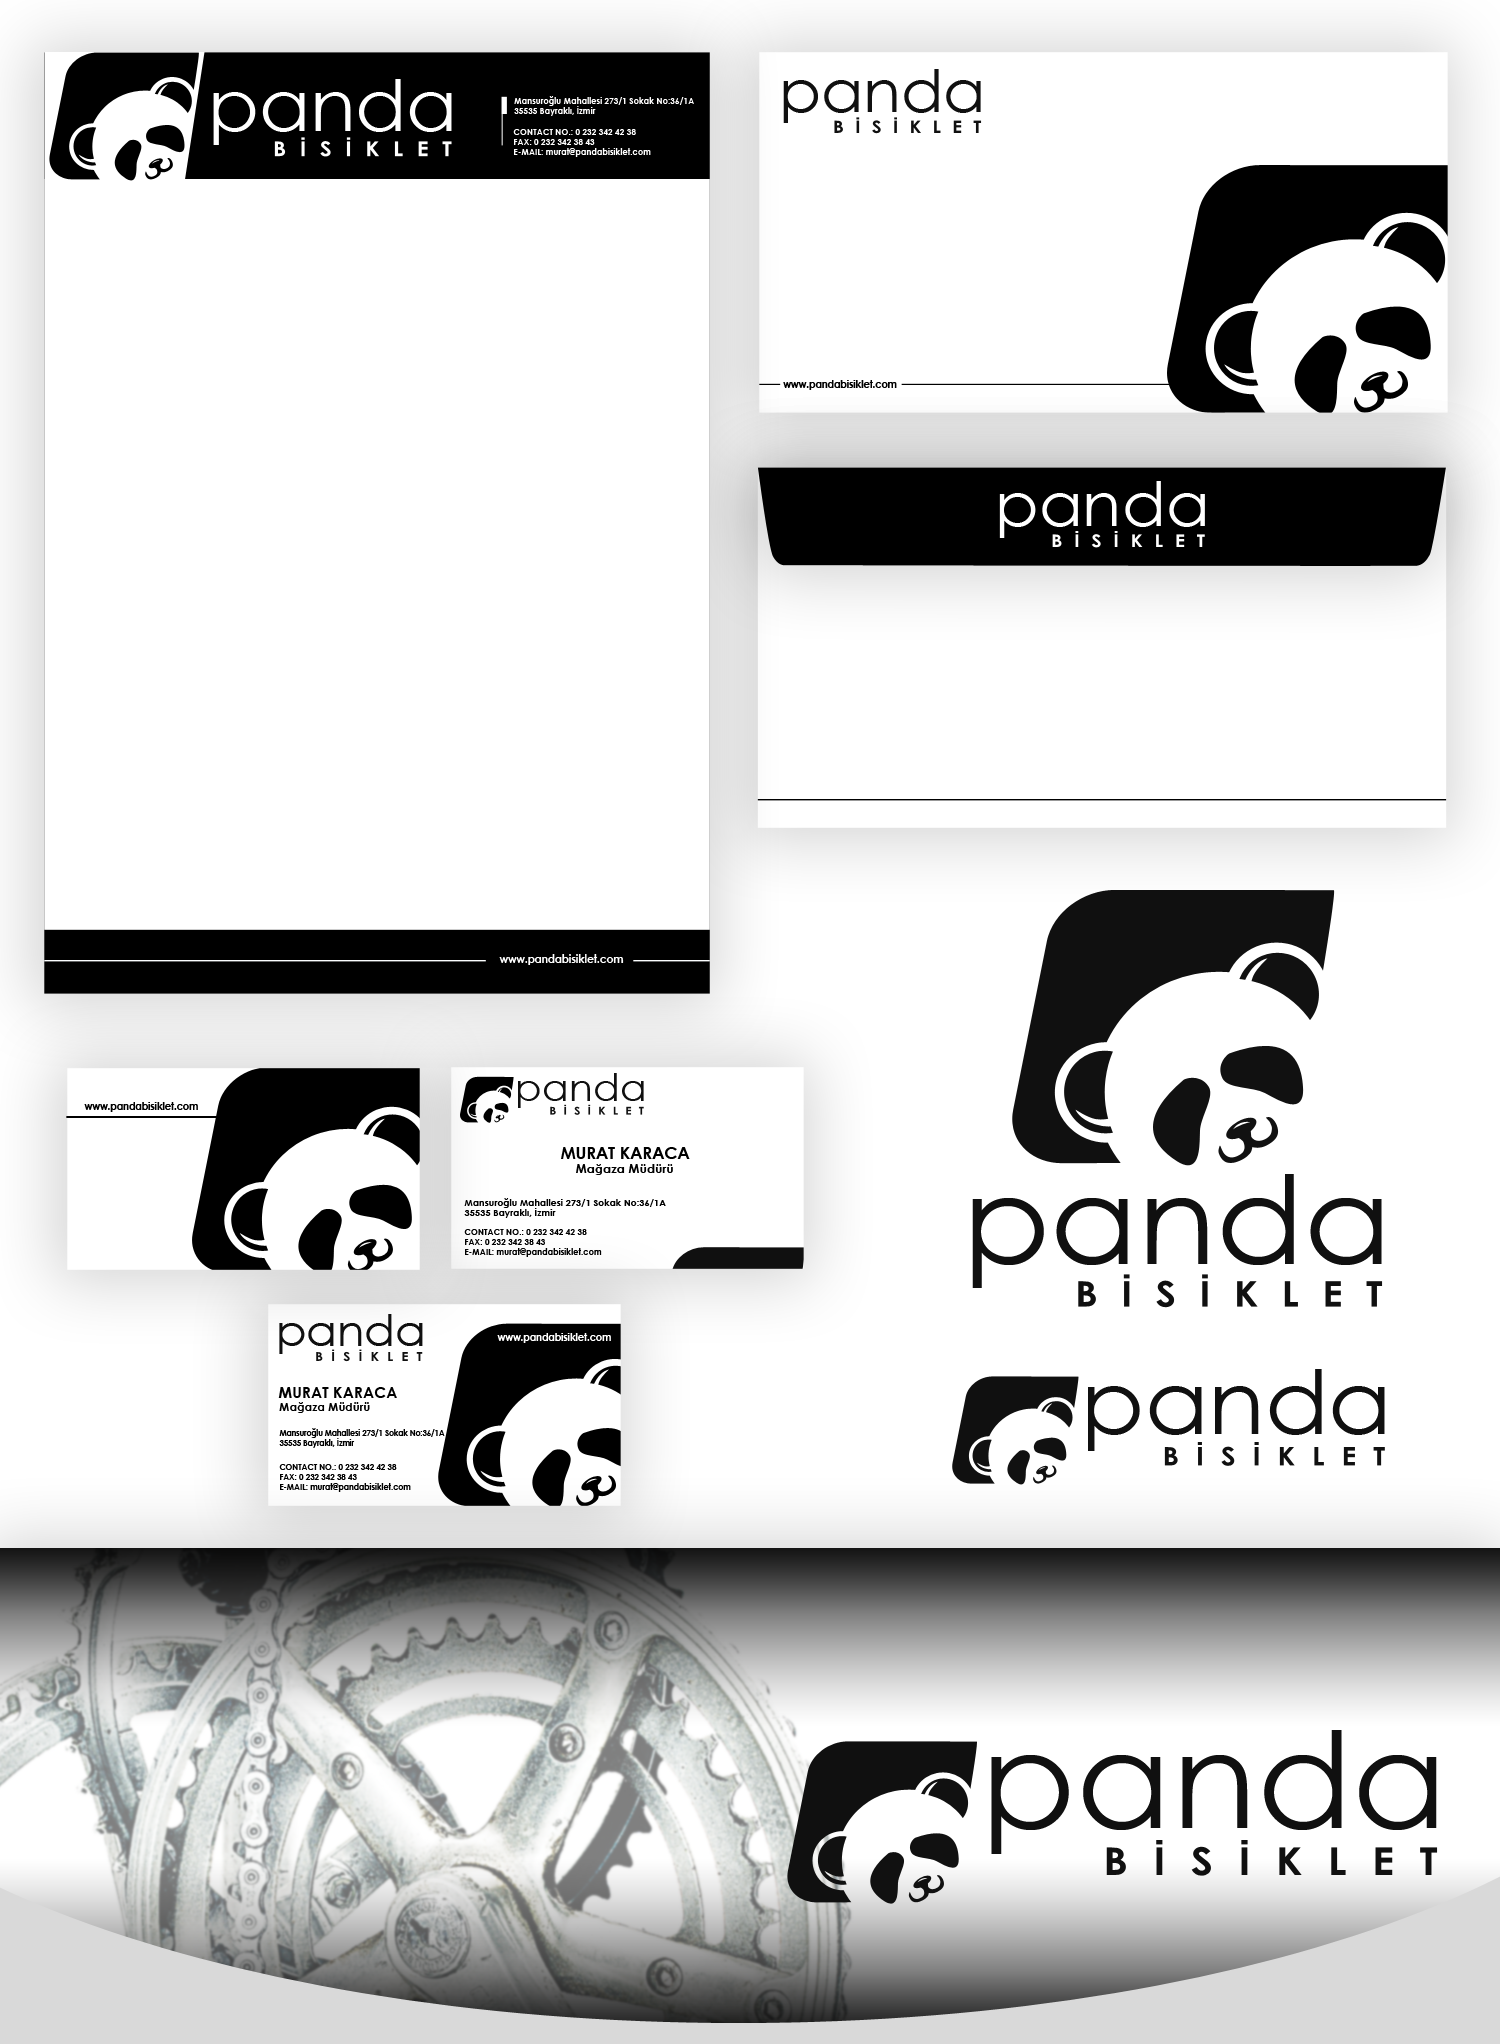 Panda Bike is looking for its logo